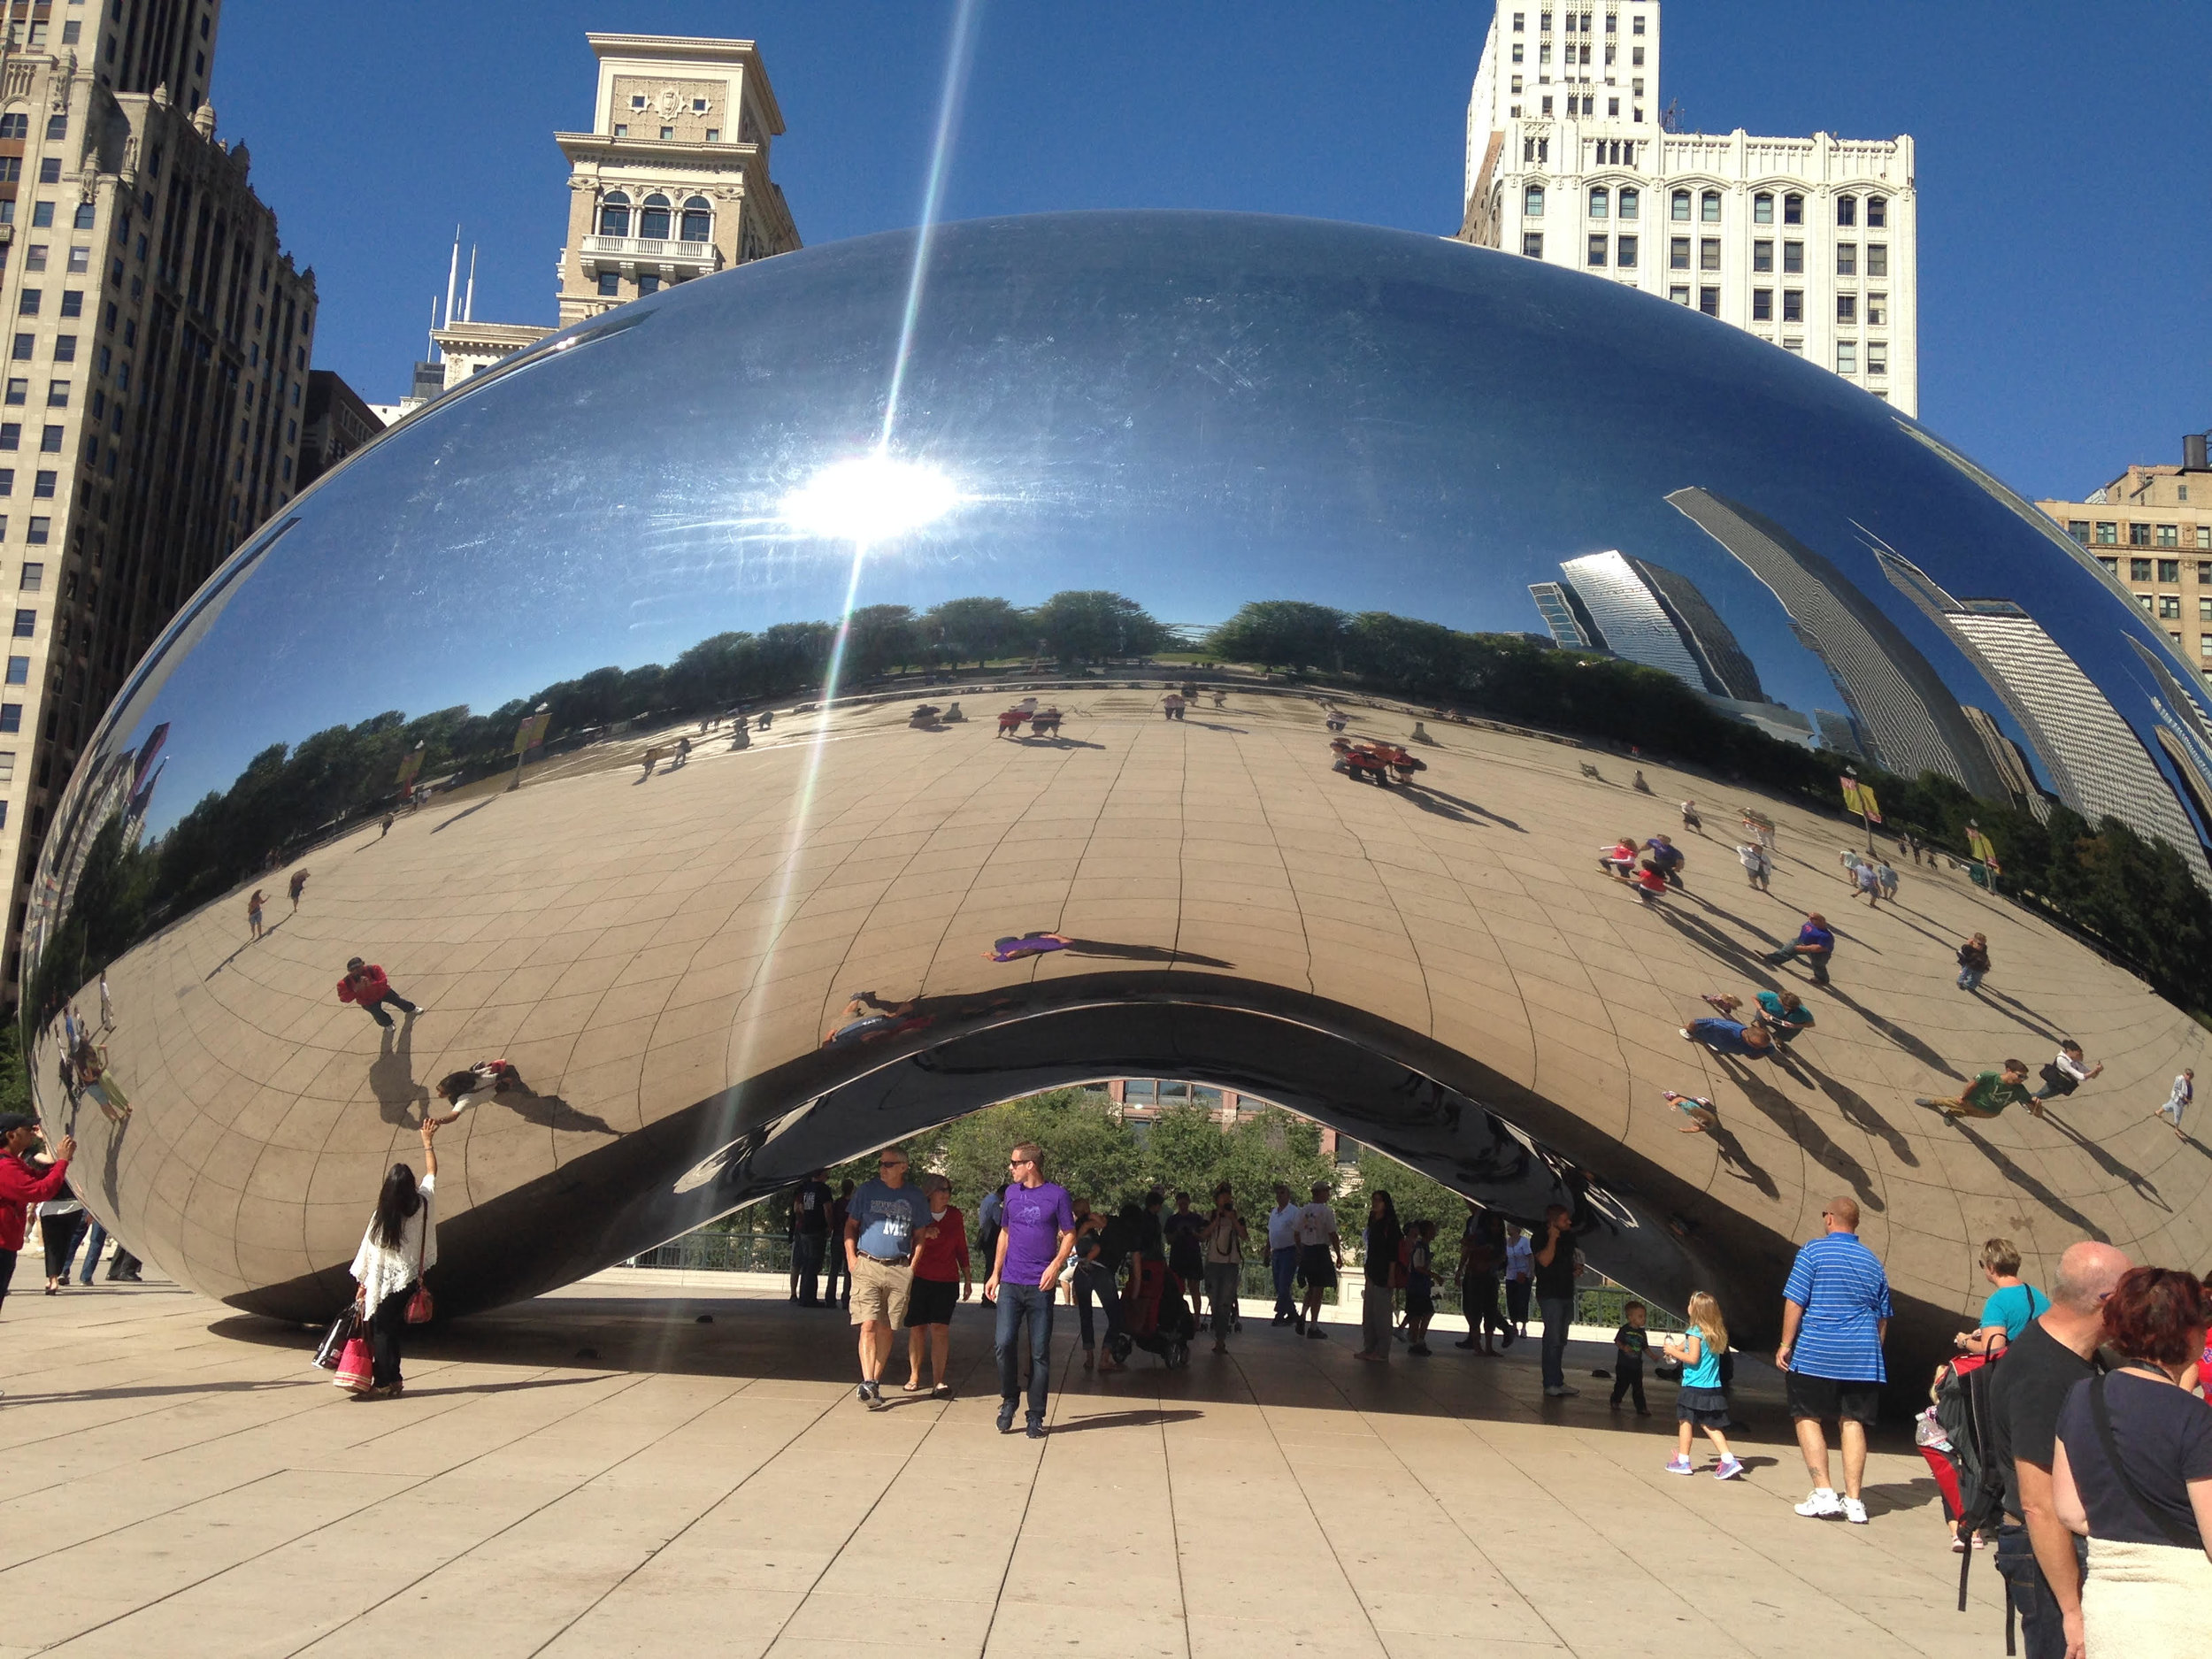 Cloud Gate  by Anish Kapoor in Millennium Park, Chicago